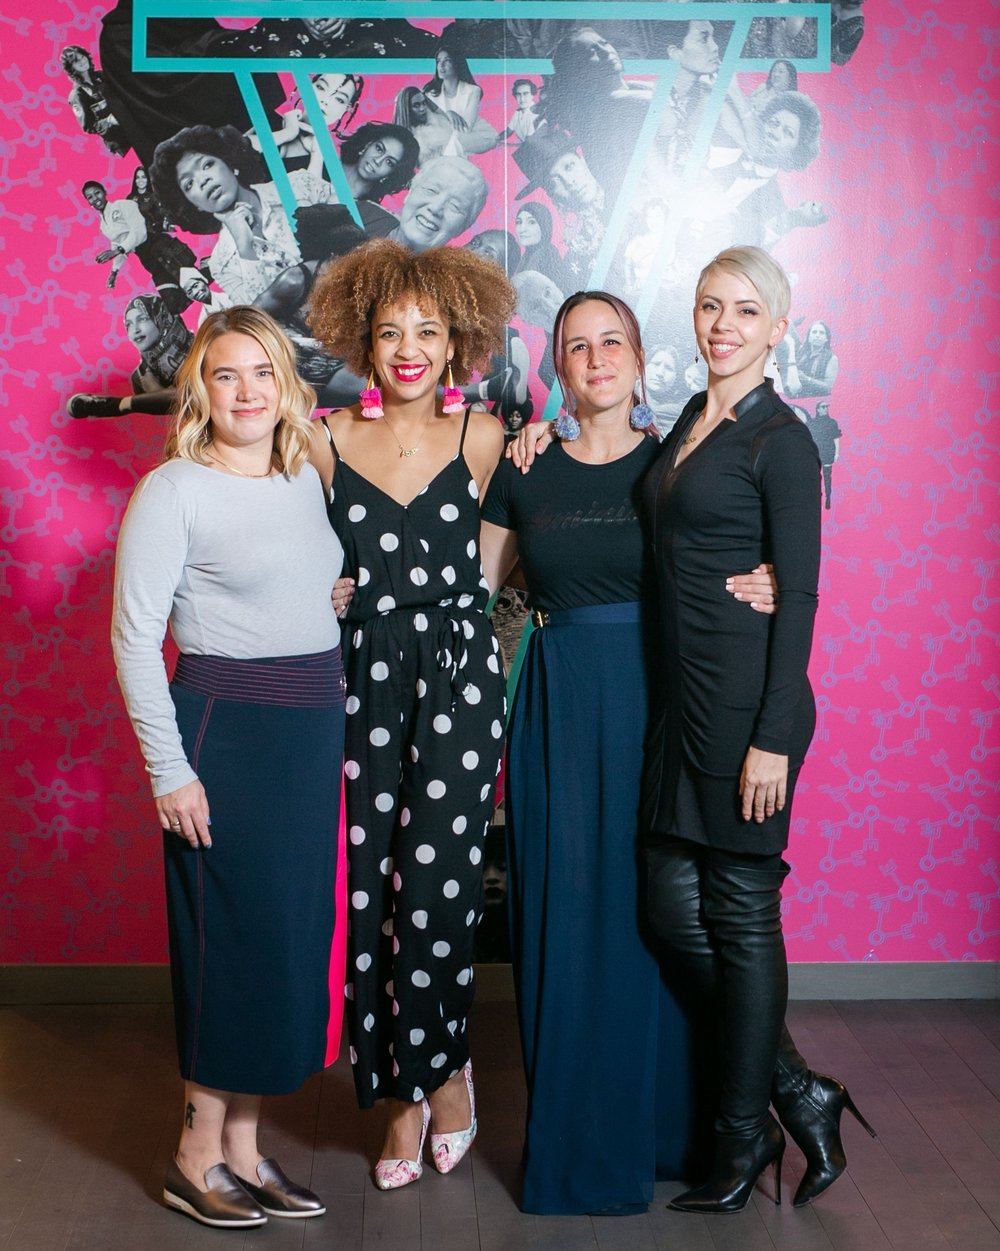 Bethany Iverson, Liz Giel, Erinn Farrell, Alex Steinman, Co-Founders of The Coven